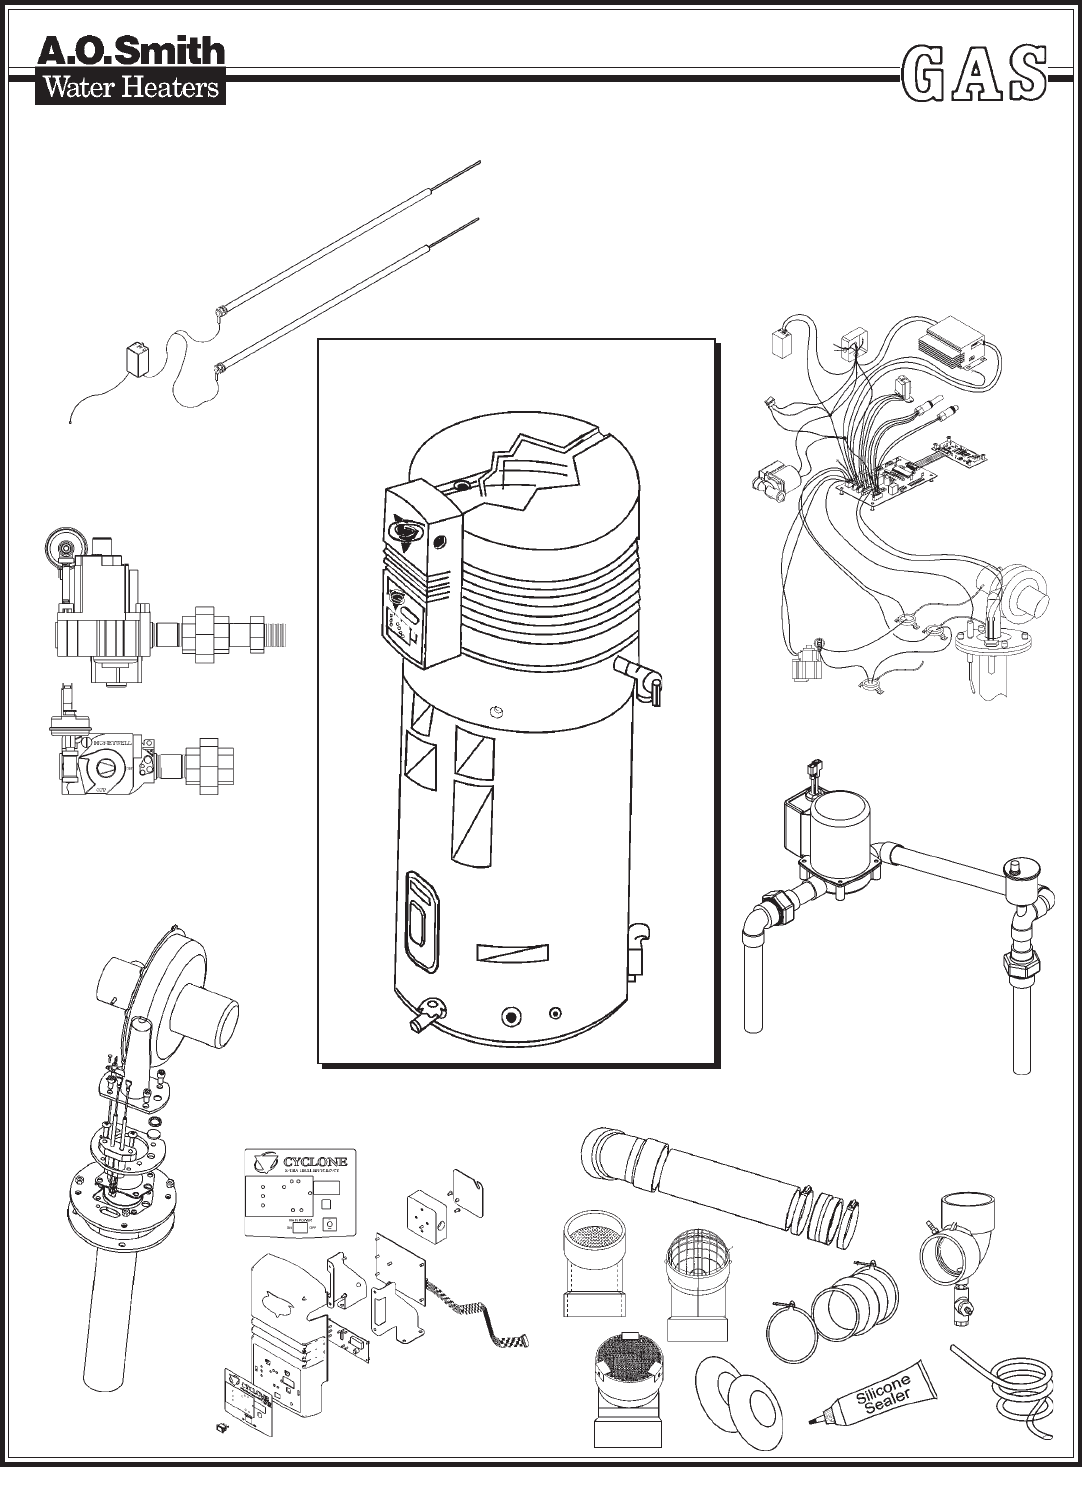 gsw series 6 water heater manual